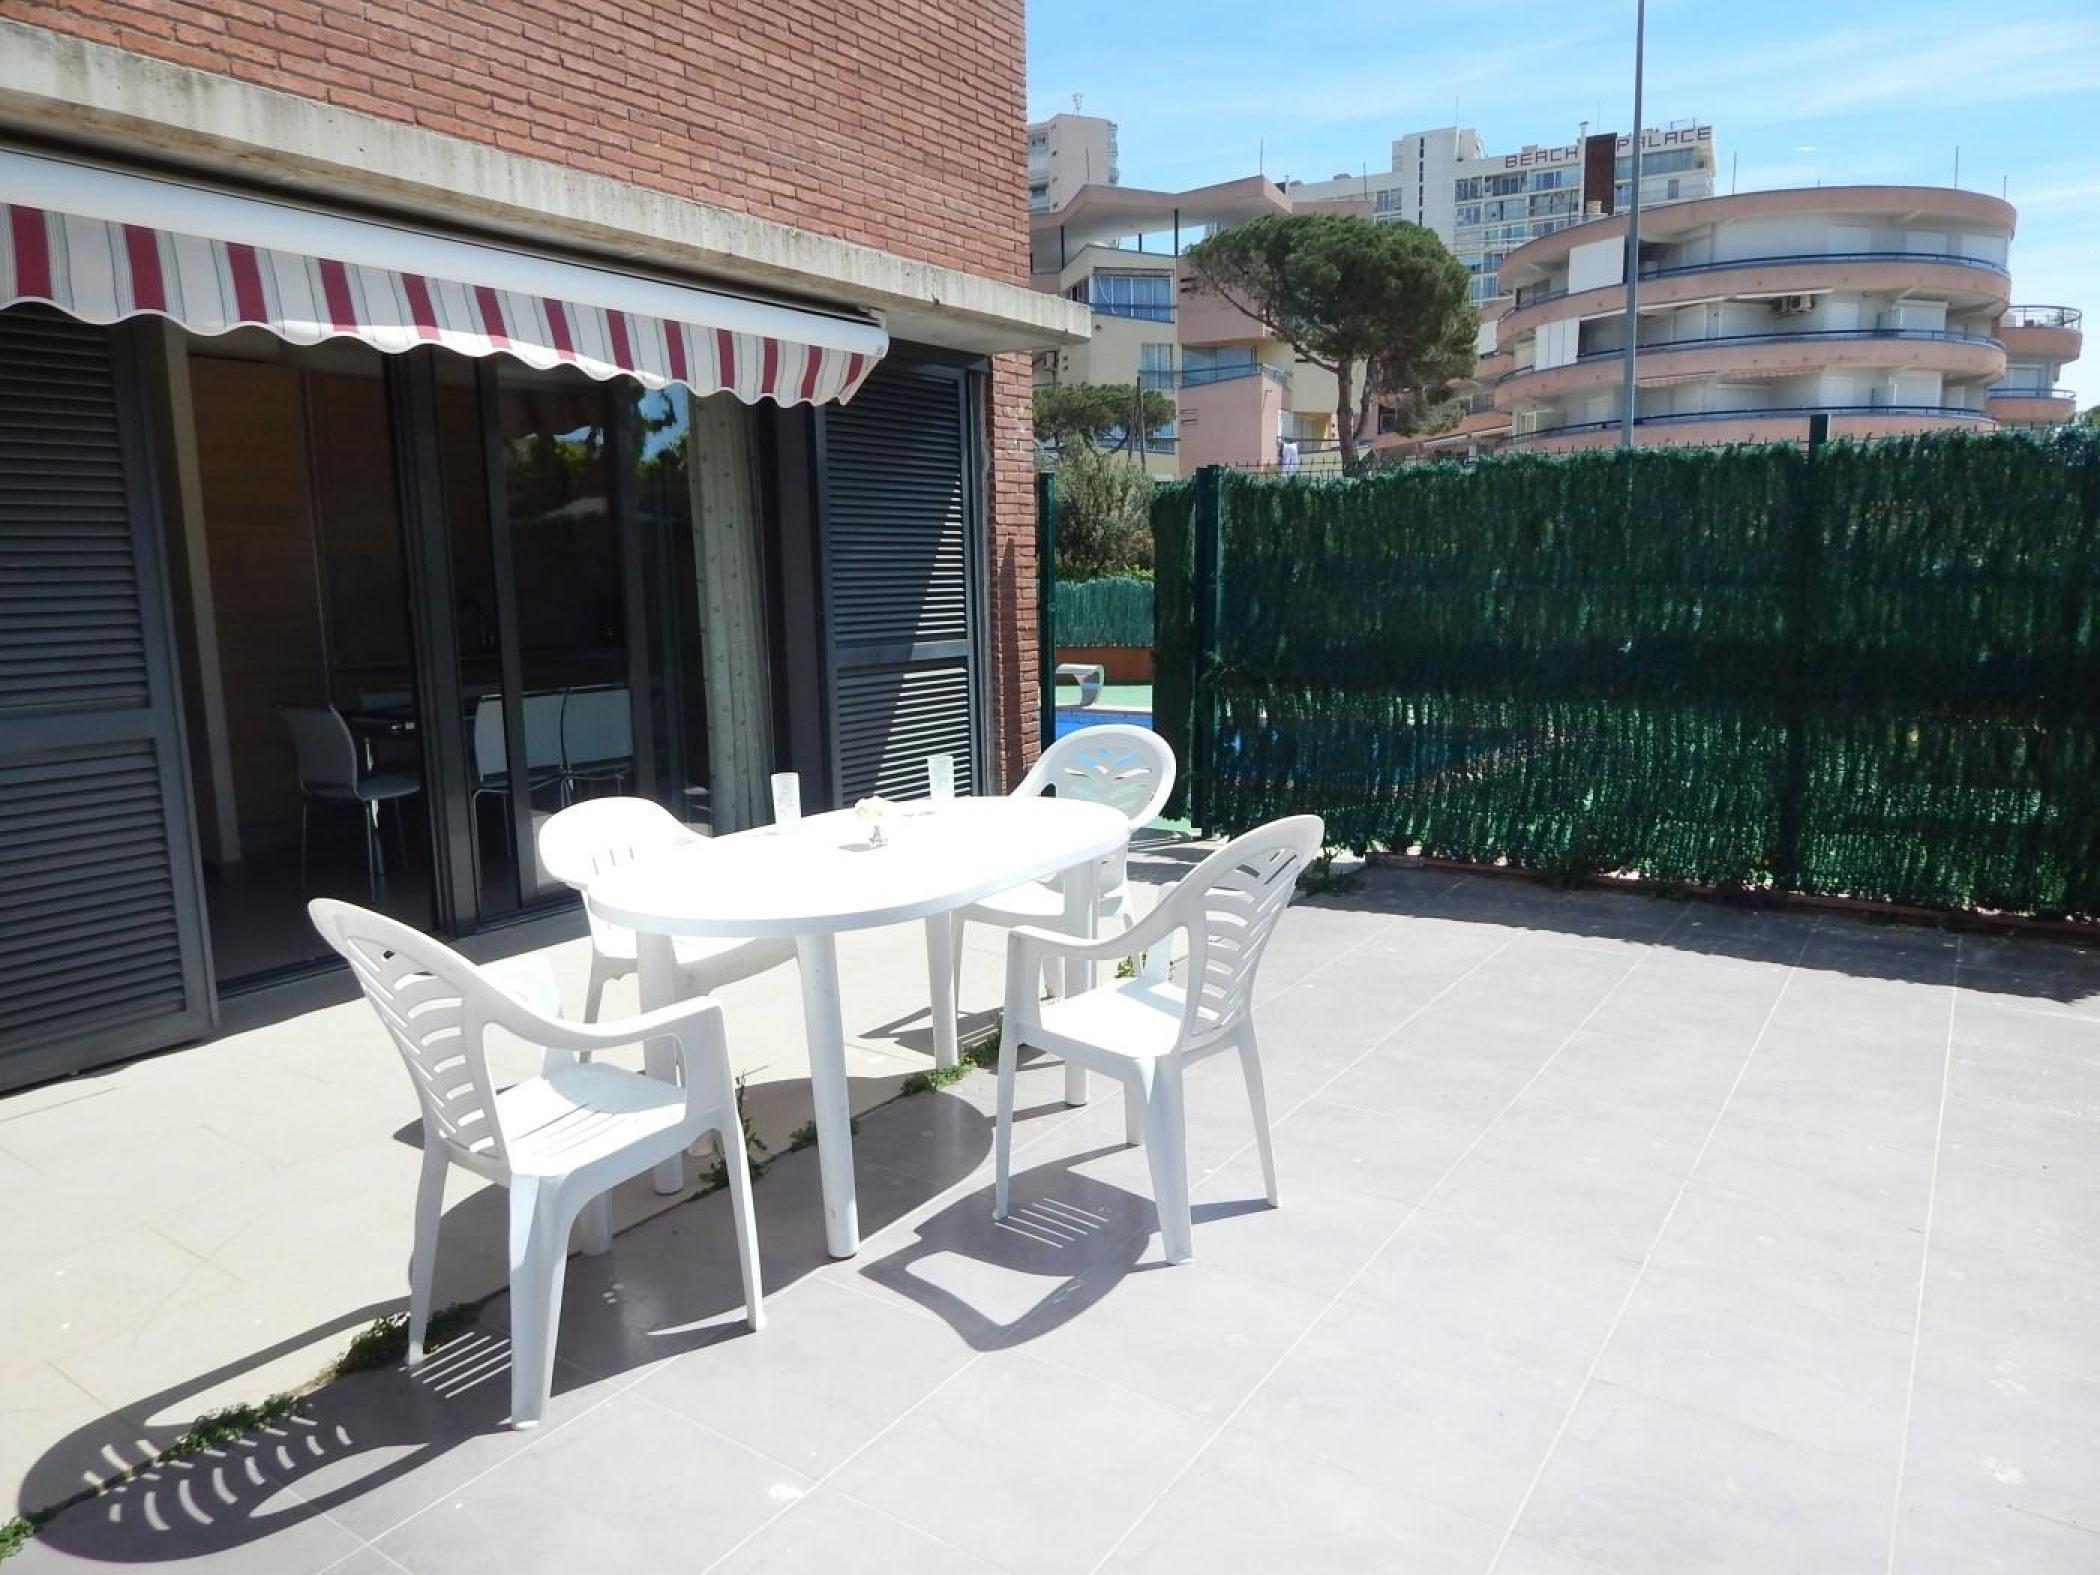 Louer Appartement à Platja d'Aro - Ground floor in front of the sea Ridaura BX4 - 17